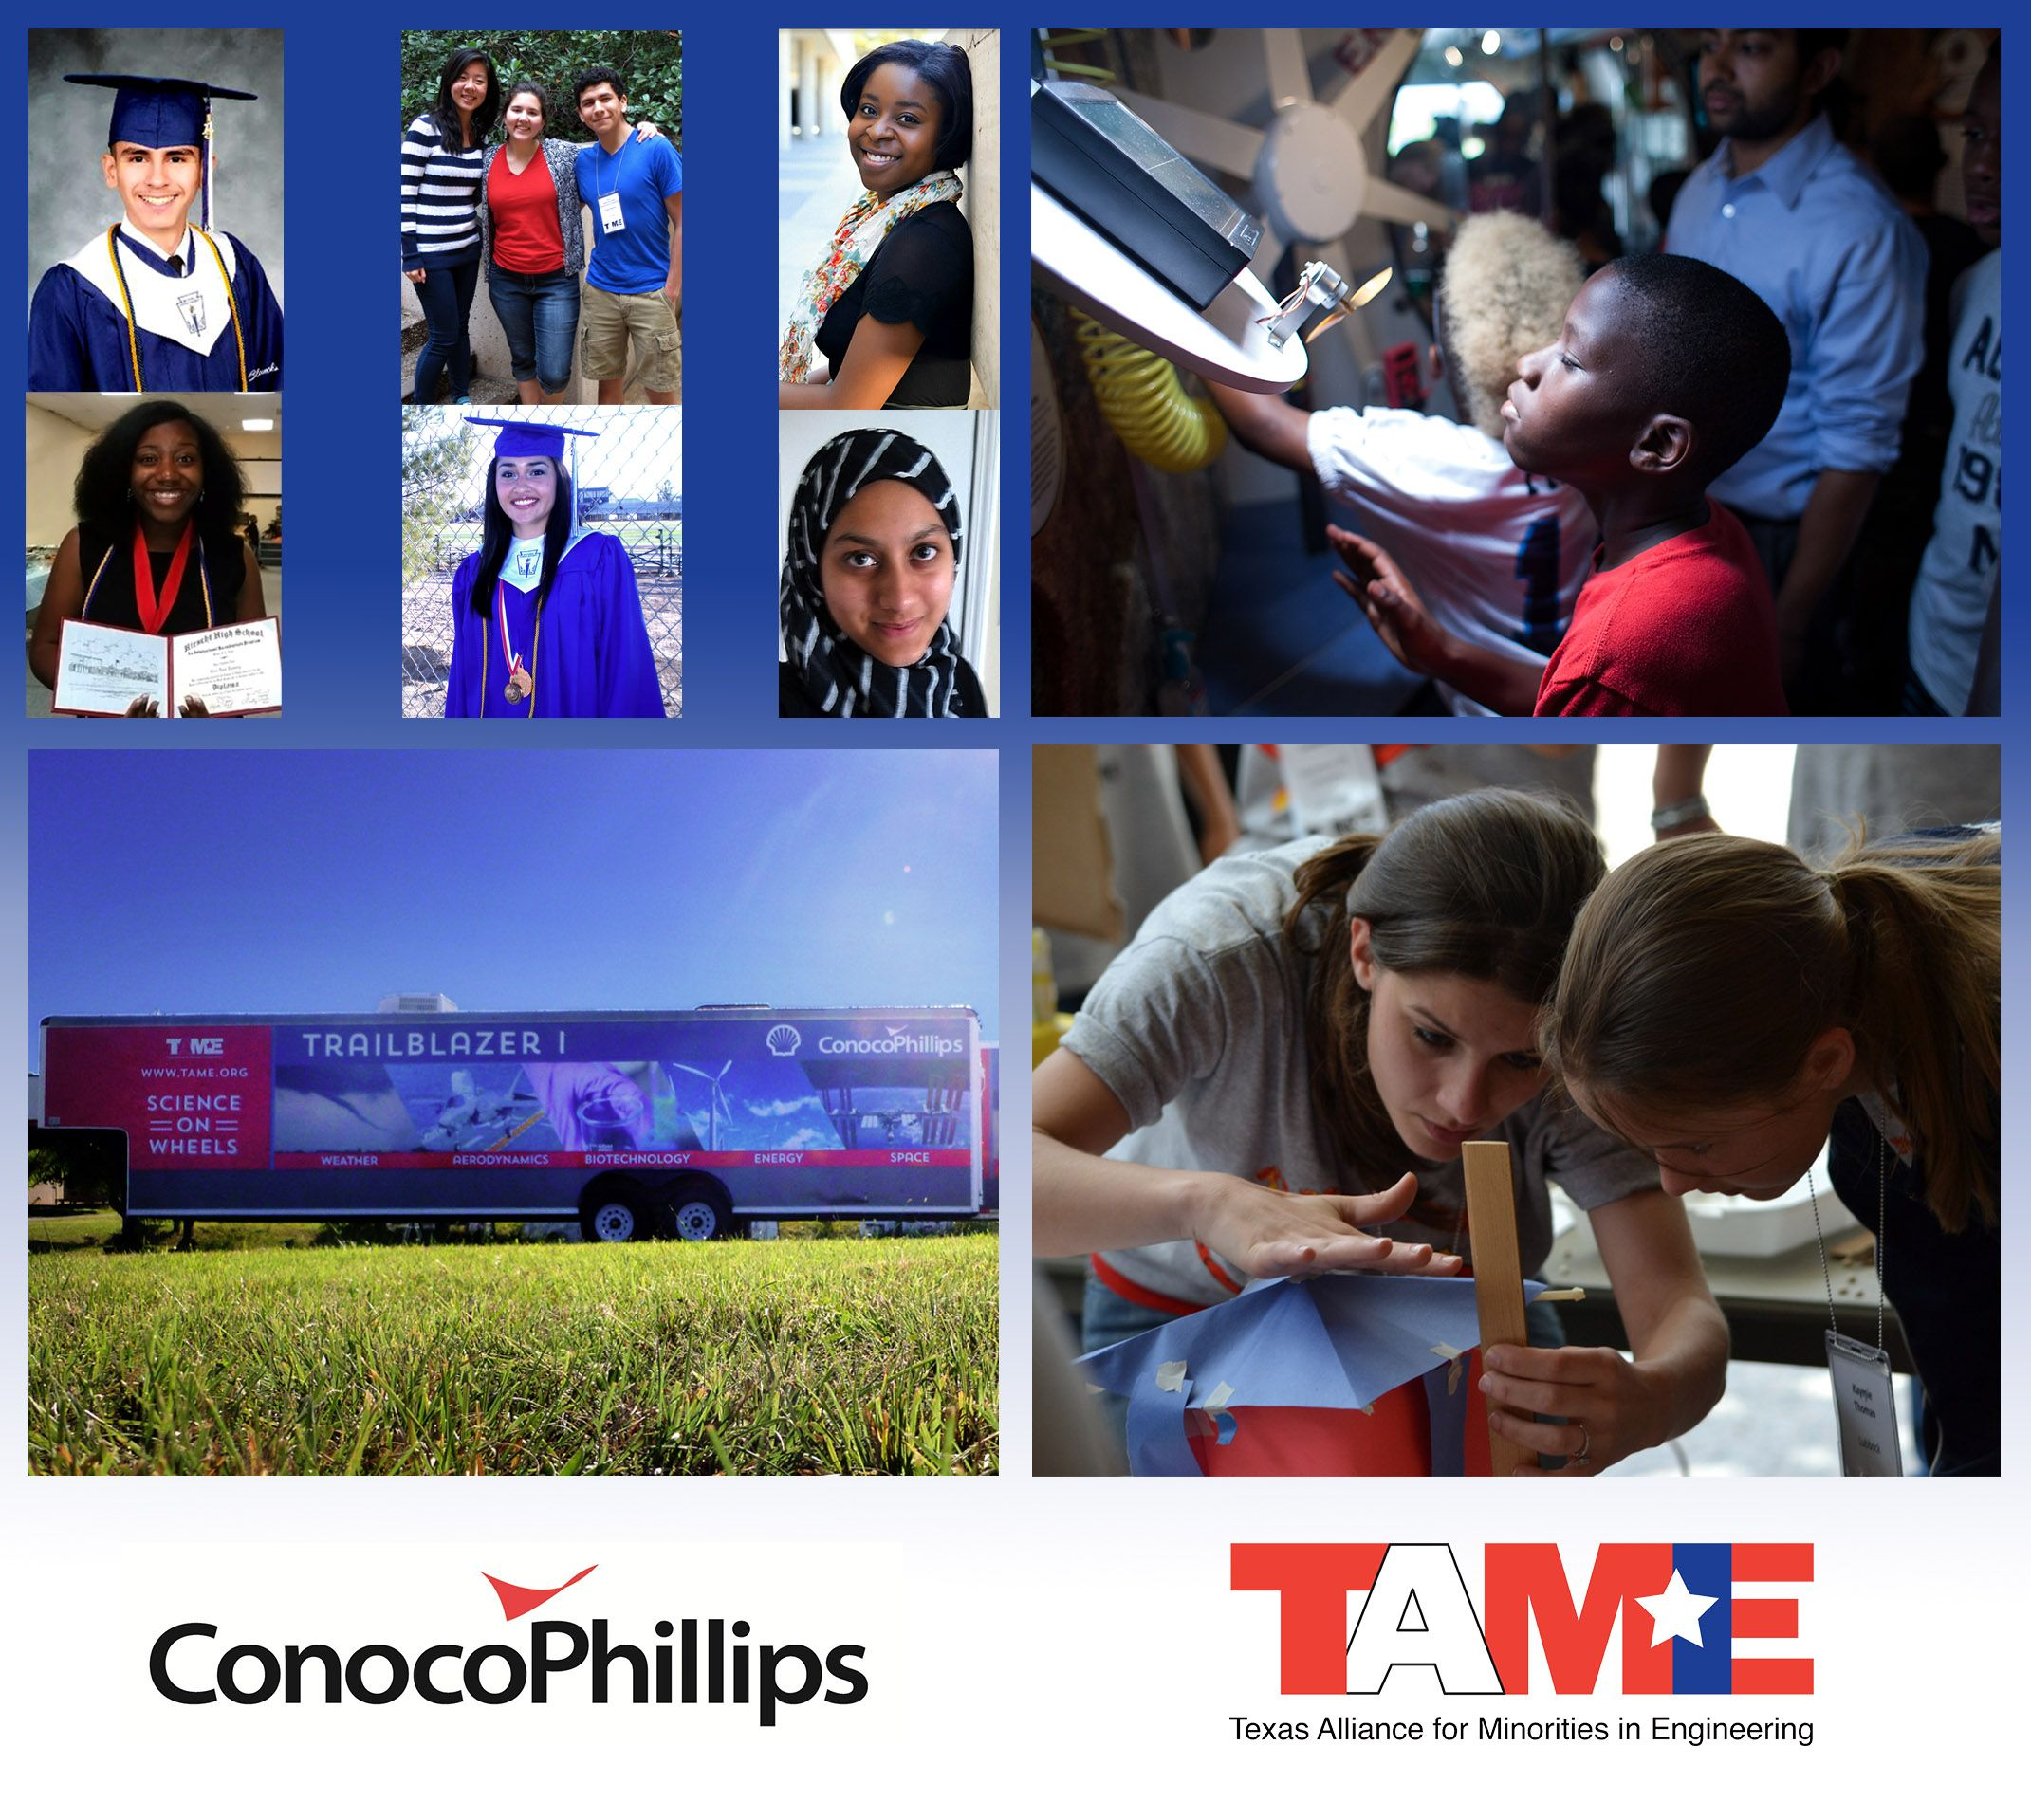 ConocoPhillips Awards Grant to TAME to Help Texas Students Pursue STEM